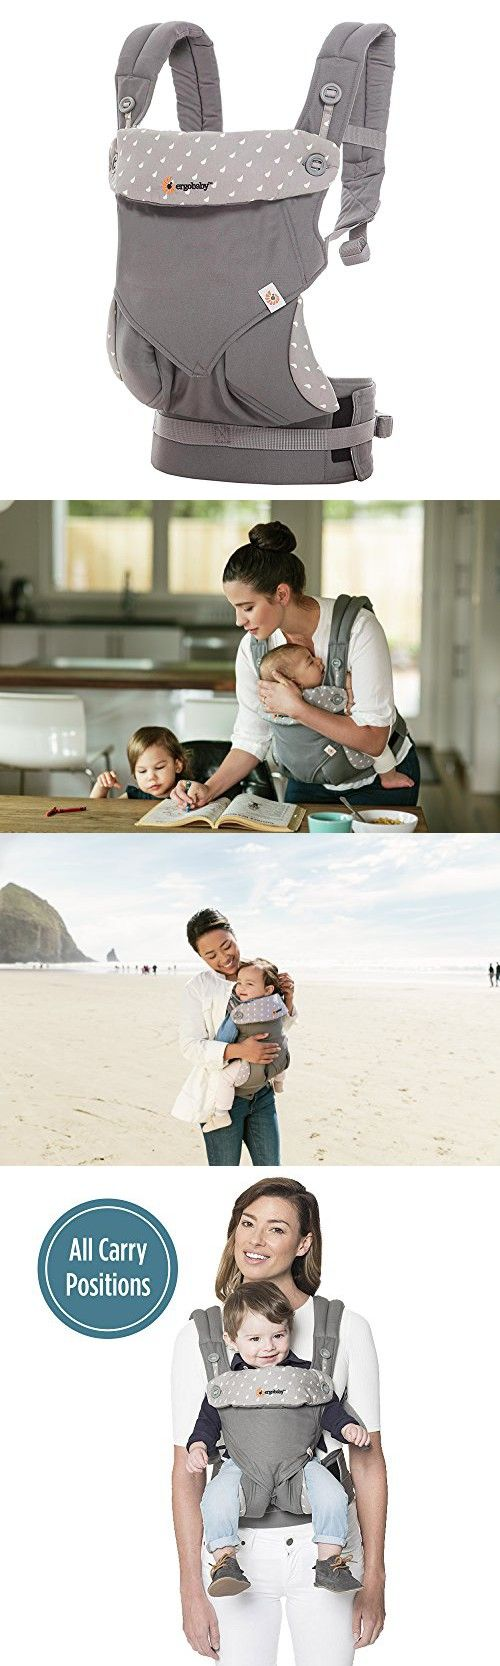 Ergobaby 360 All Carry Positions Award-Winning Ergonomic Baby Carrier, Dewy Grey